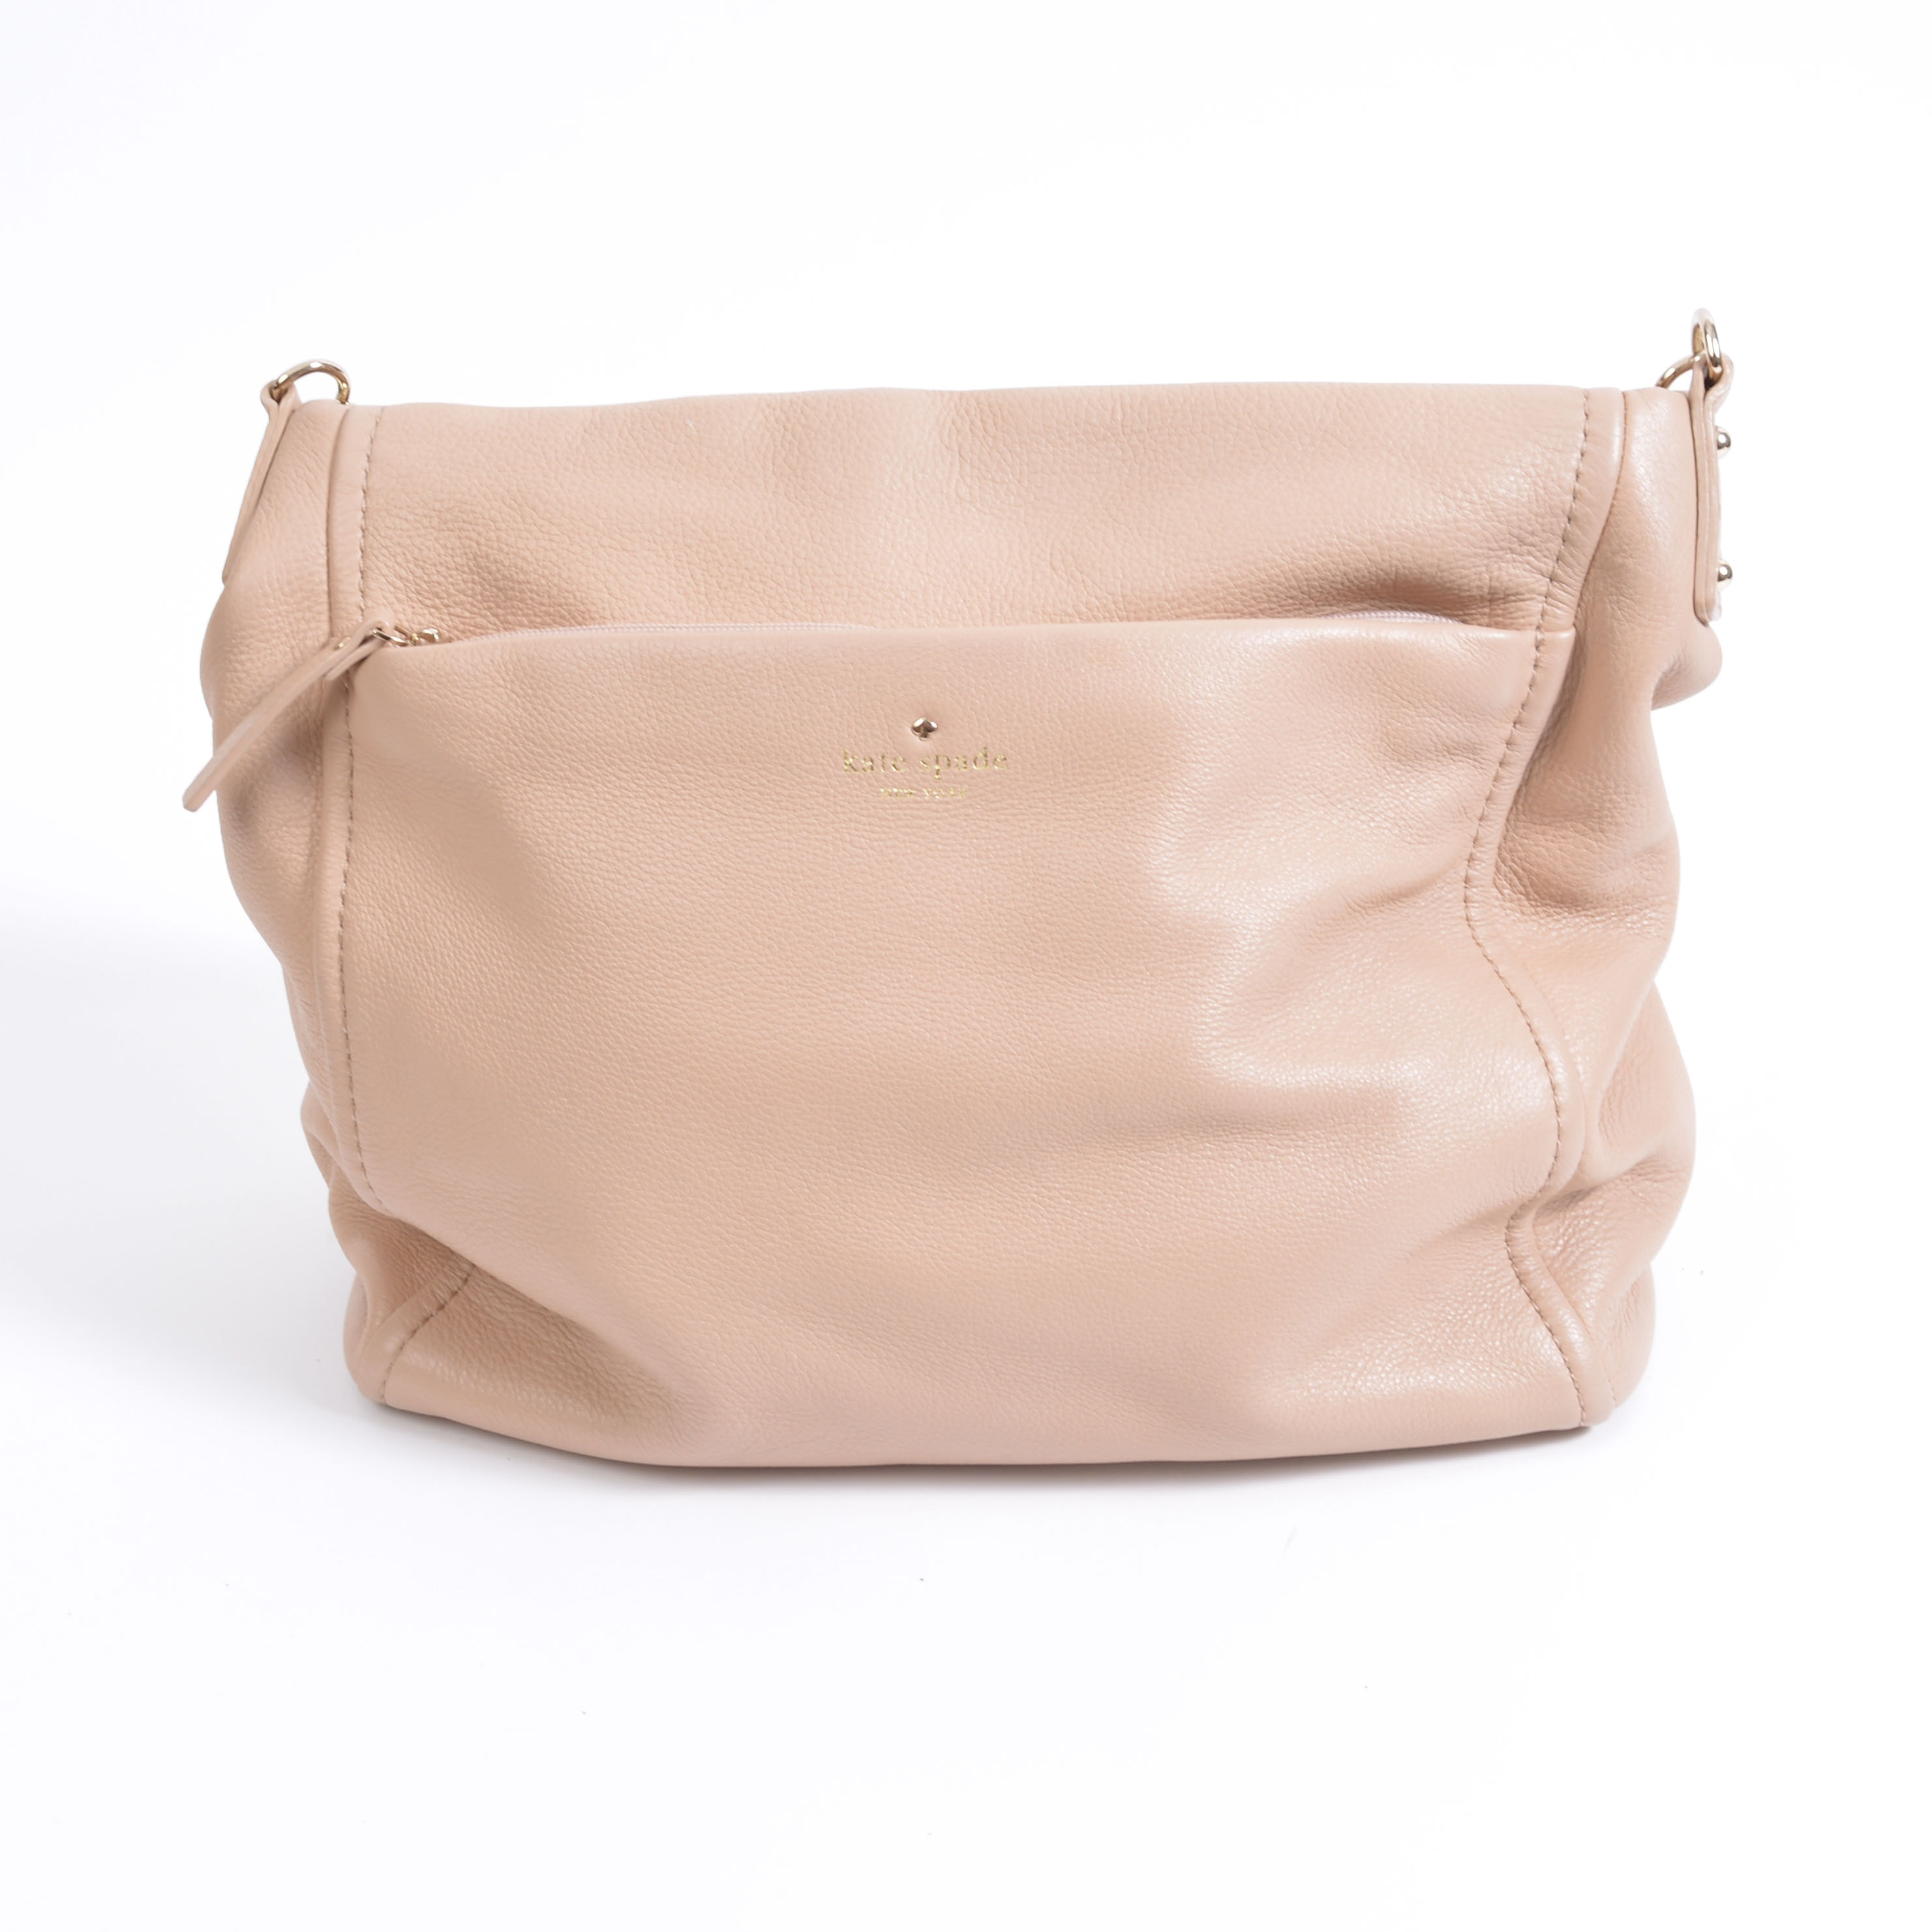 Kate Spade Beige Leather Handbag